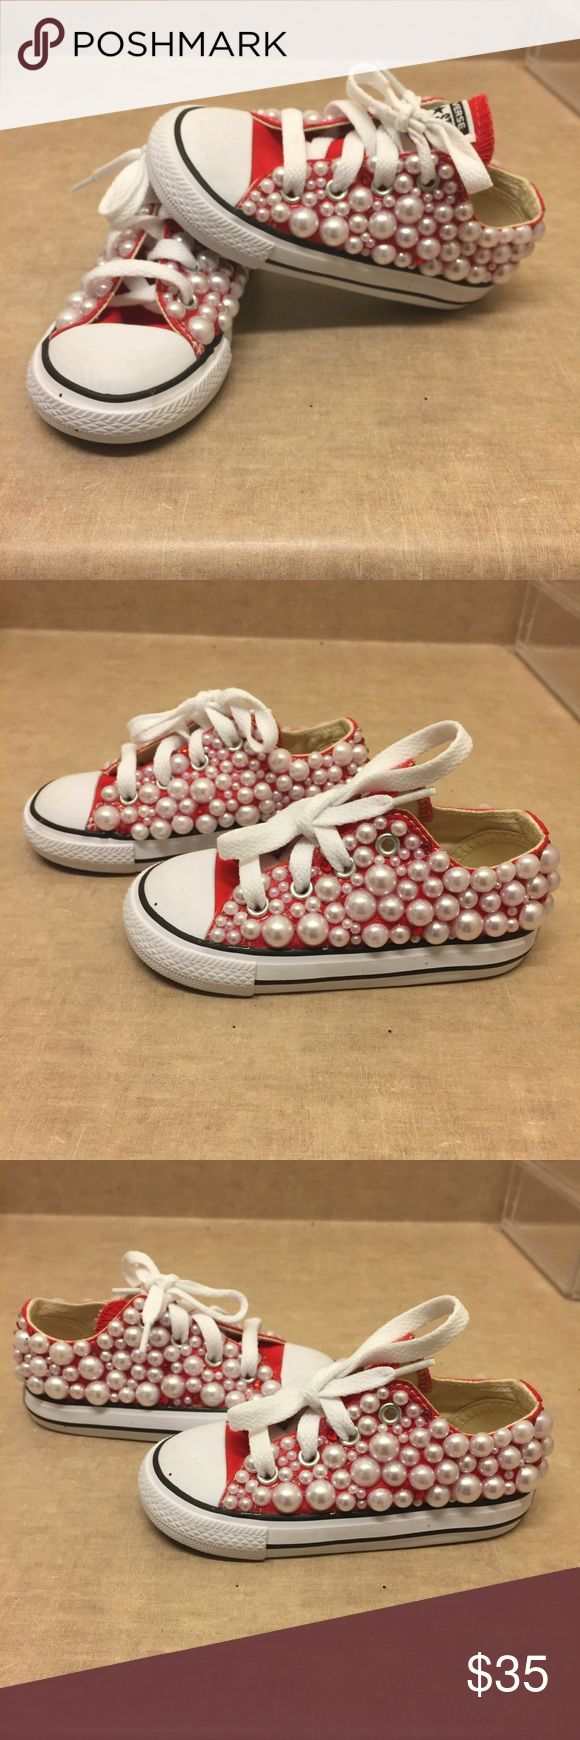 ❣️Custom Converse ❣️ Custom converse size 7 by me! Brand new never worn. Cover with pearls are red & clear diamonds! Blingy this are very cute for kids to wear for birthday or great birthday gift! Converse runs a size big! Converse Shoes Sneakers